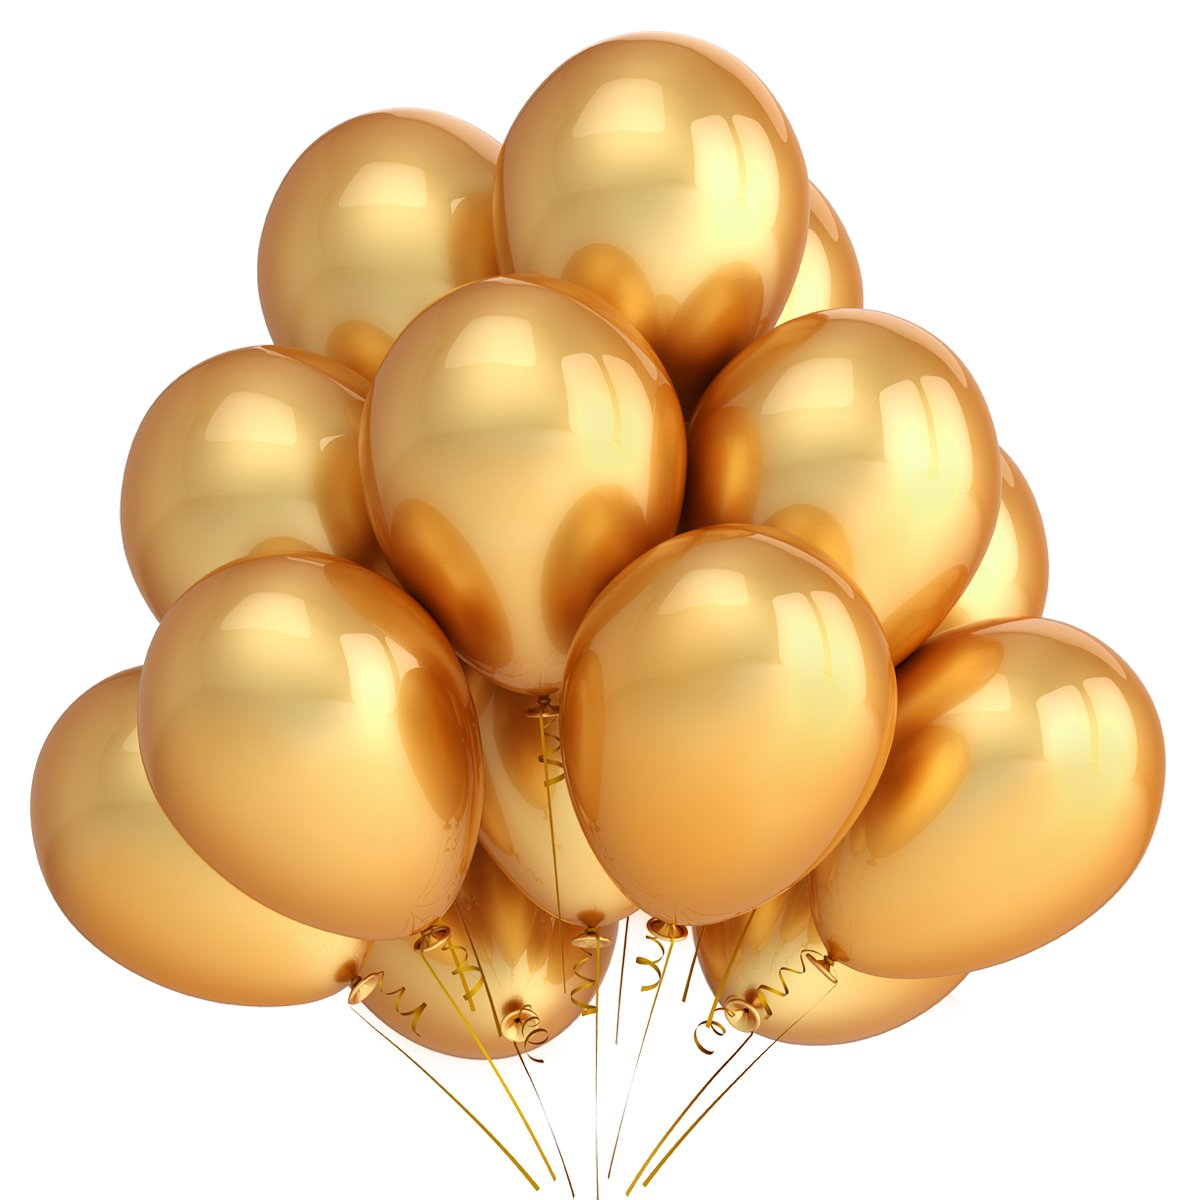 Gold Balloons Decorations, 100 Pack 12 \'\' Gold Color Latex Balloons and 1 Pack Balloons Inflator Pump and 2 Rolls of Gold Curling Ribbons